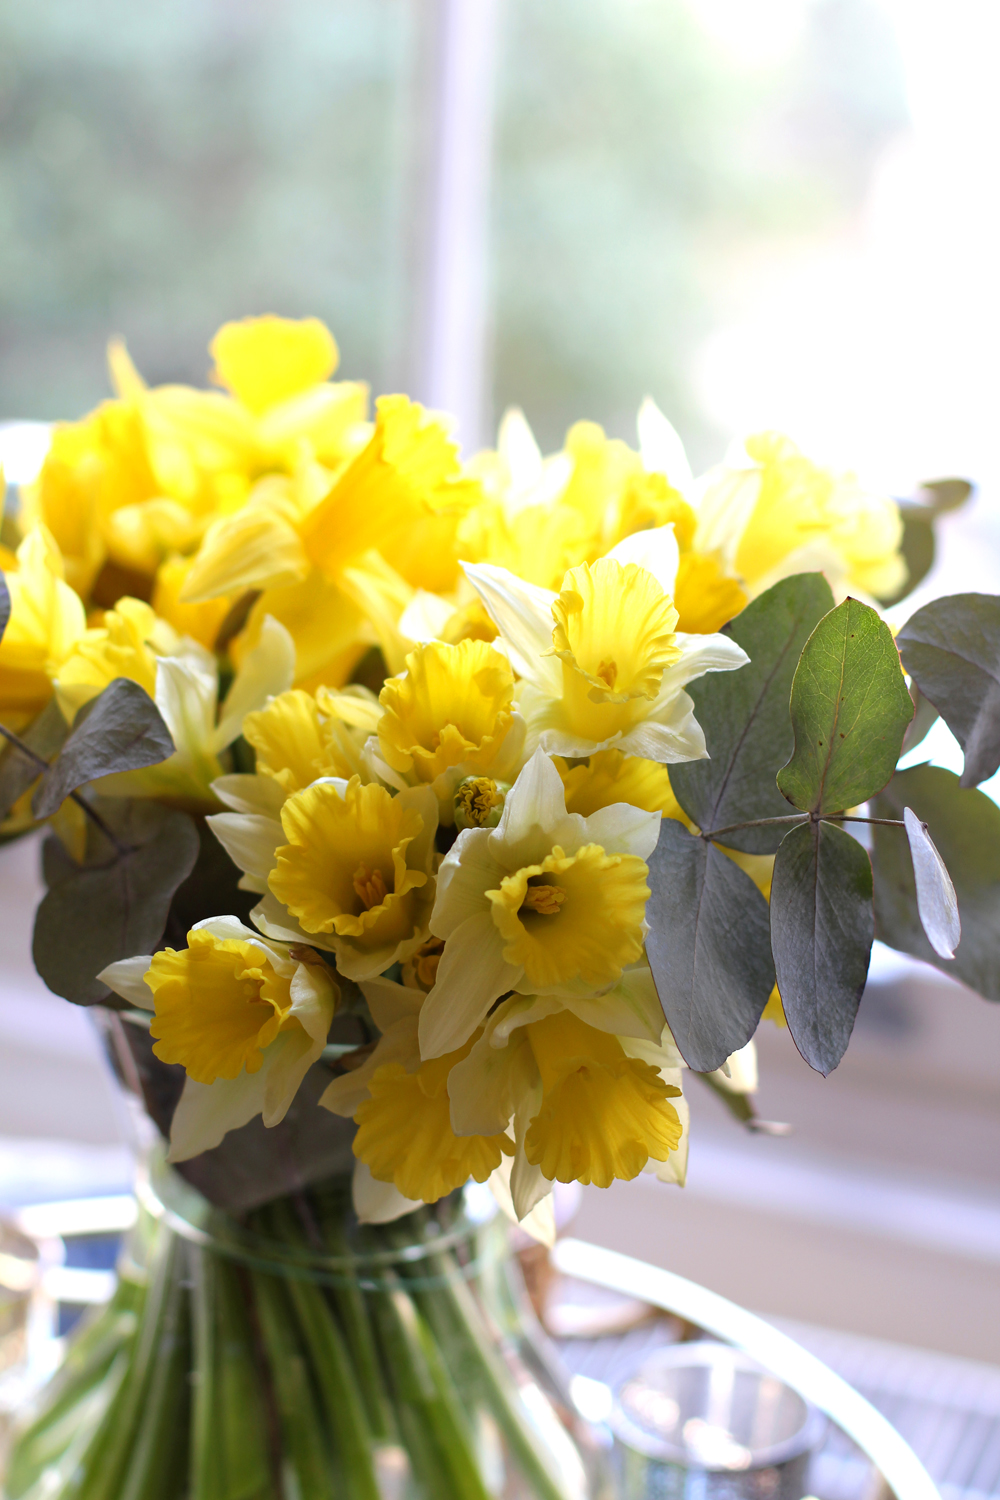 Daffodils at home - London style blogger